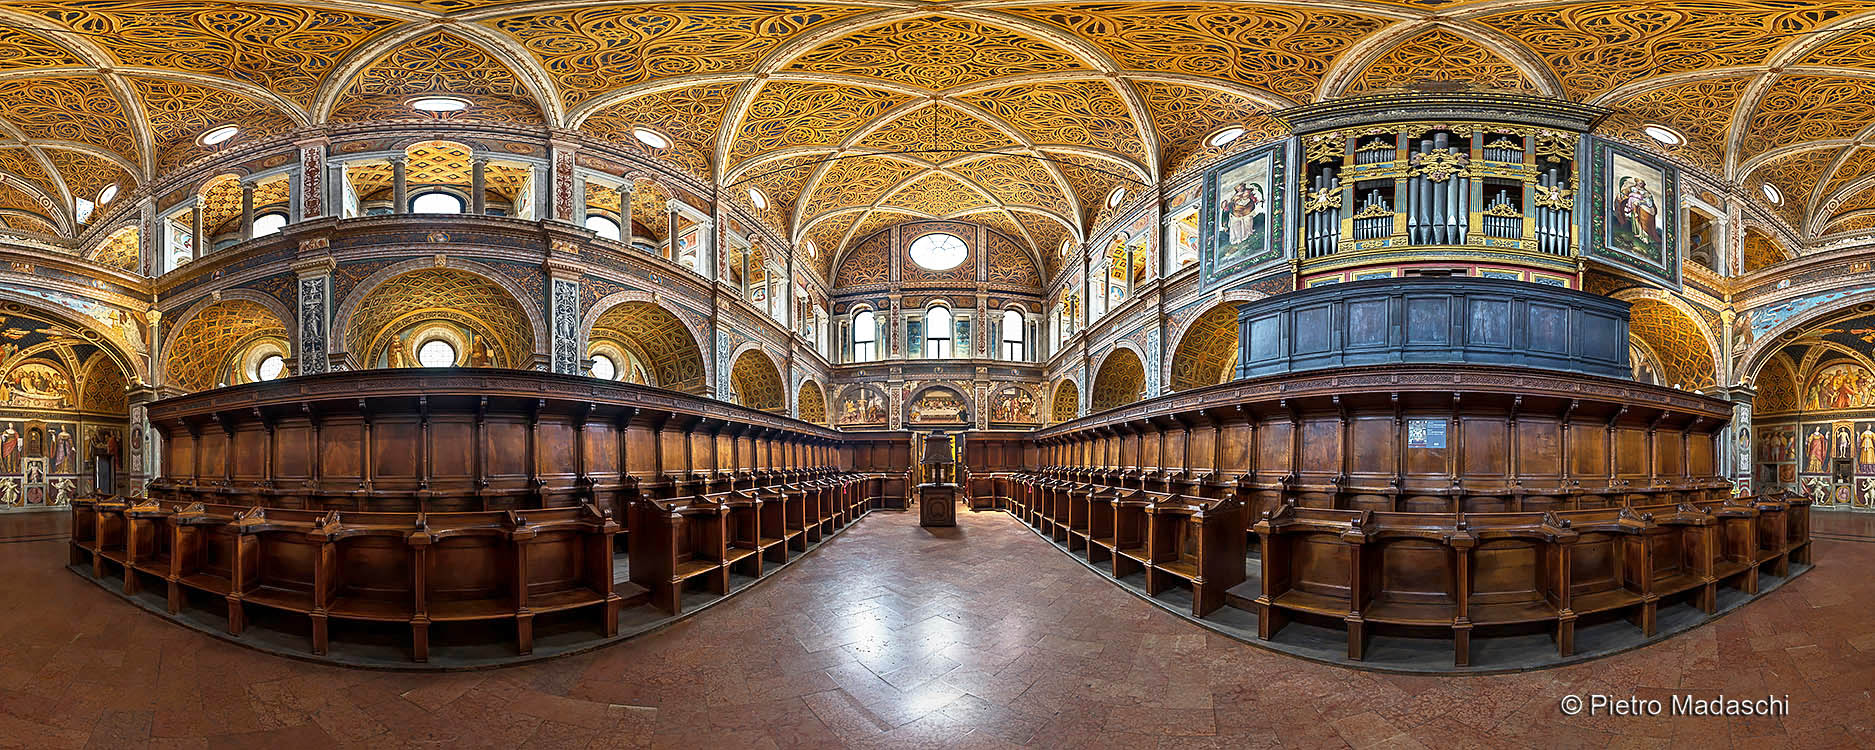 St Maurizio at Monastry: the splendid Hall of Nuns and the 16th Century's organ